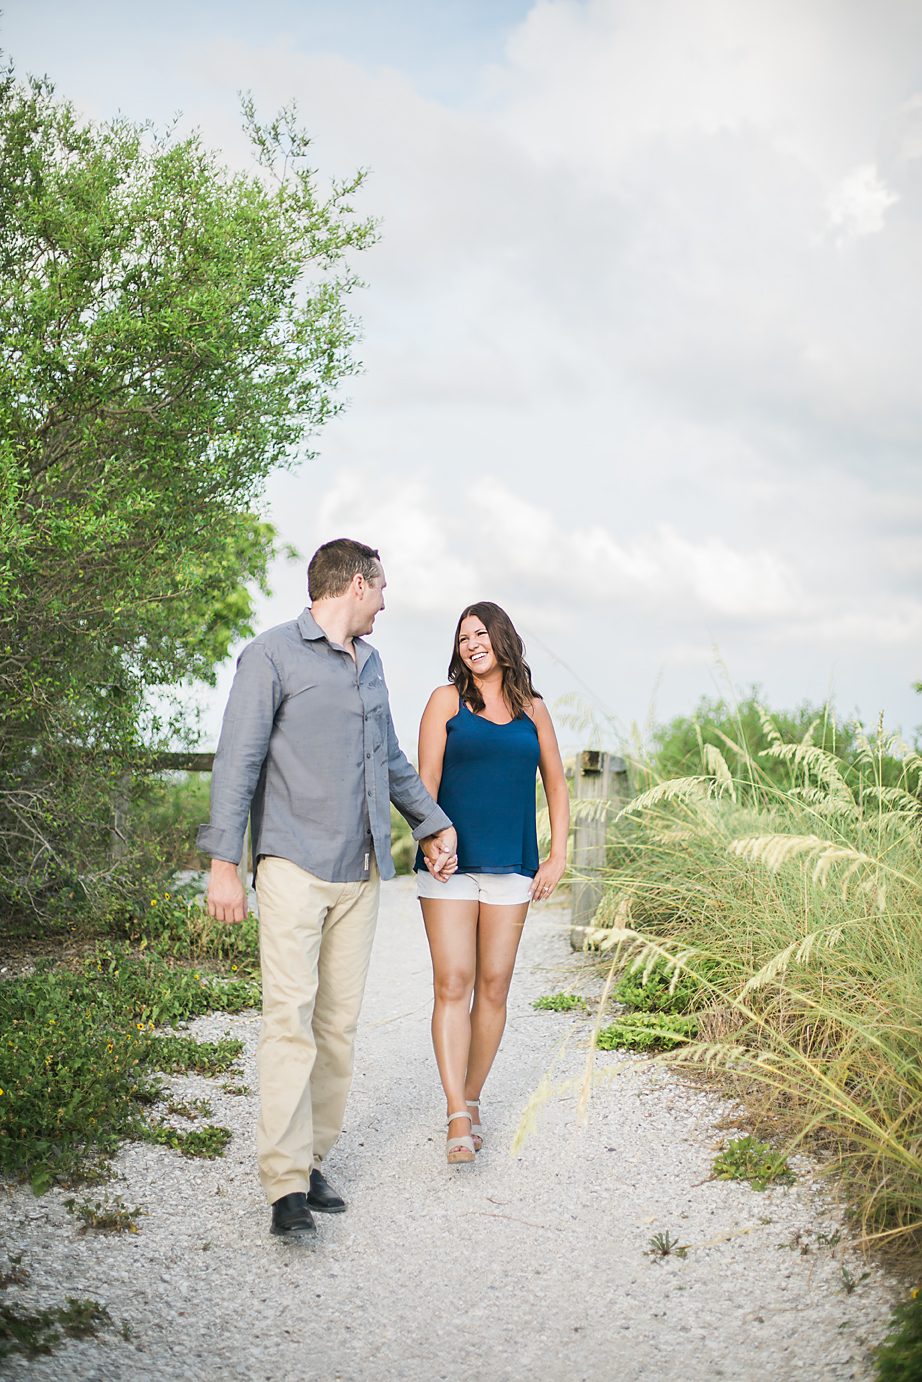 Alicia + Matt - Sarasota Engagement Photography - Sarasota Florida Beach Engagement Session - Emily & Co. Photography